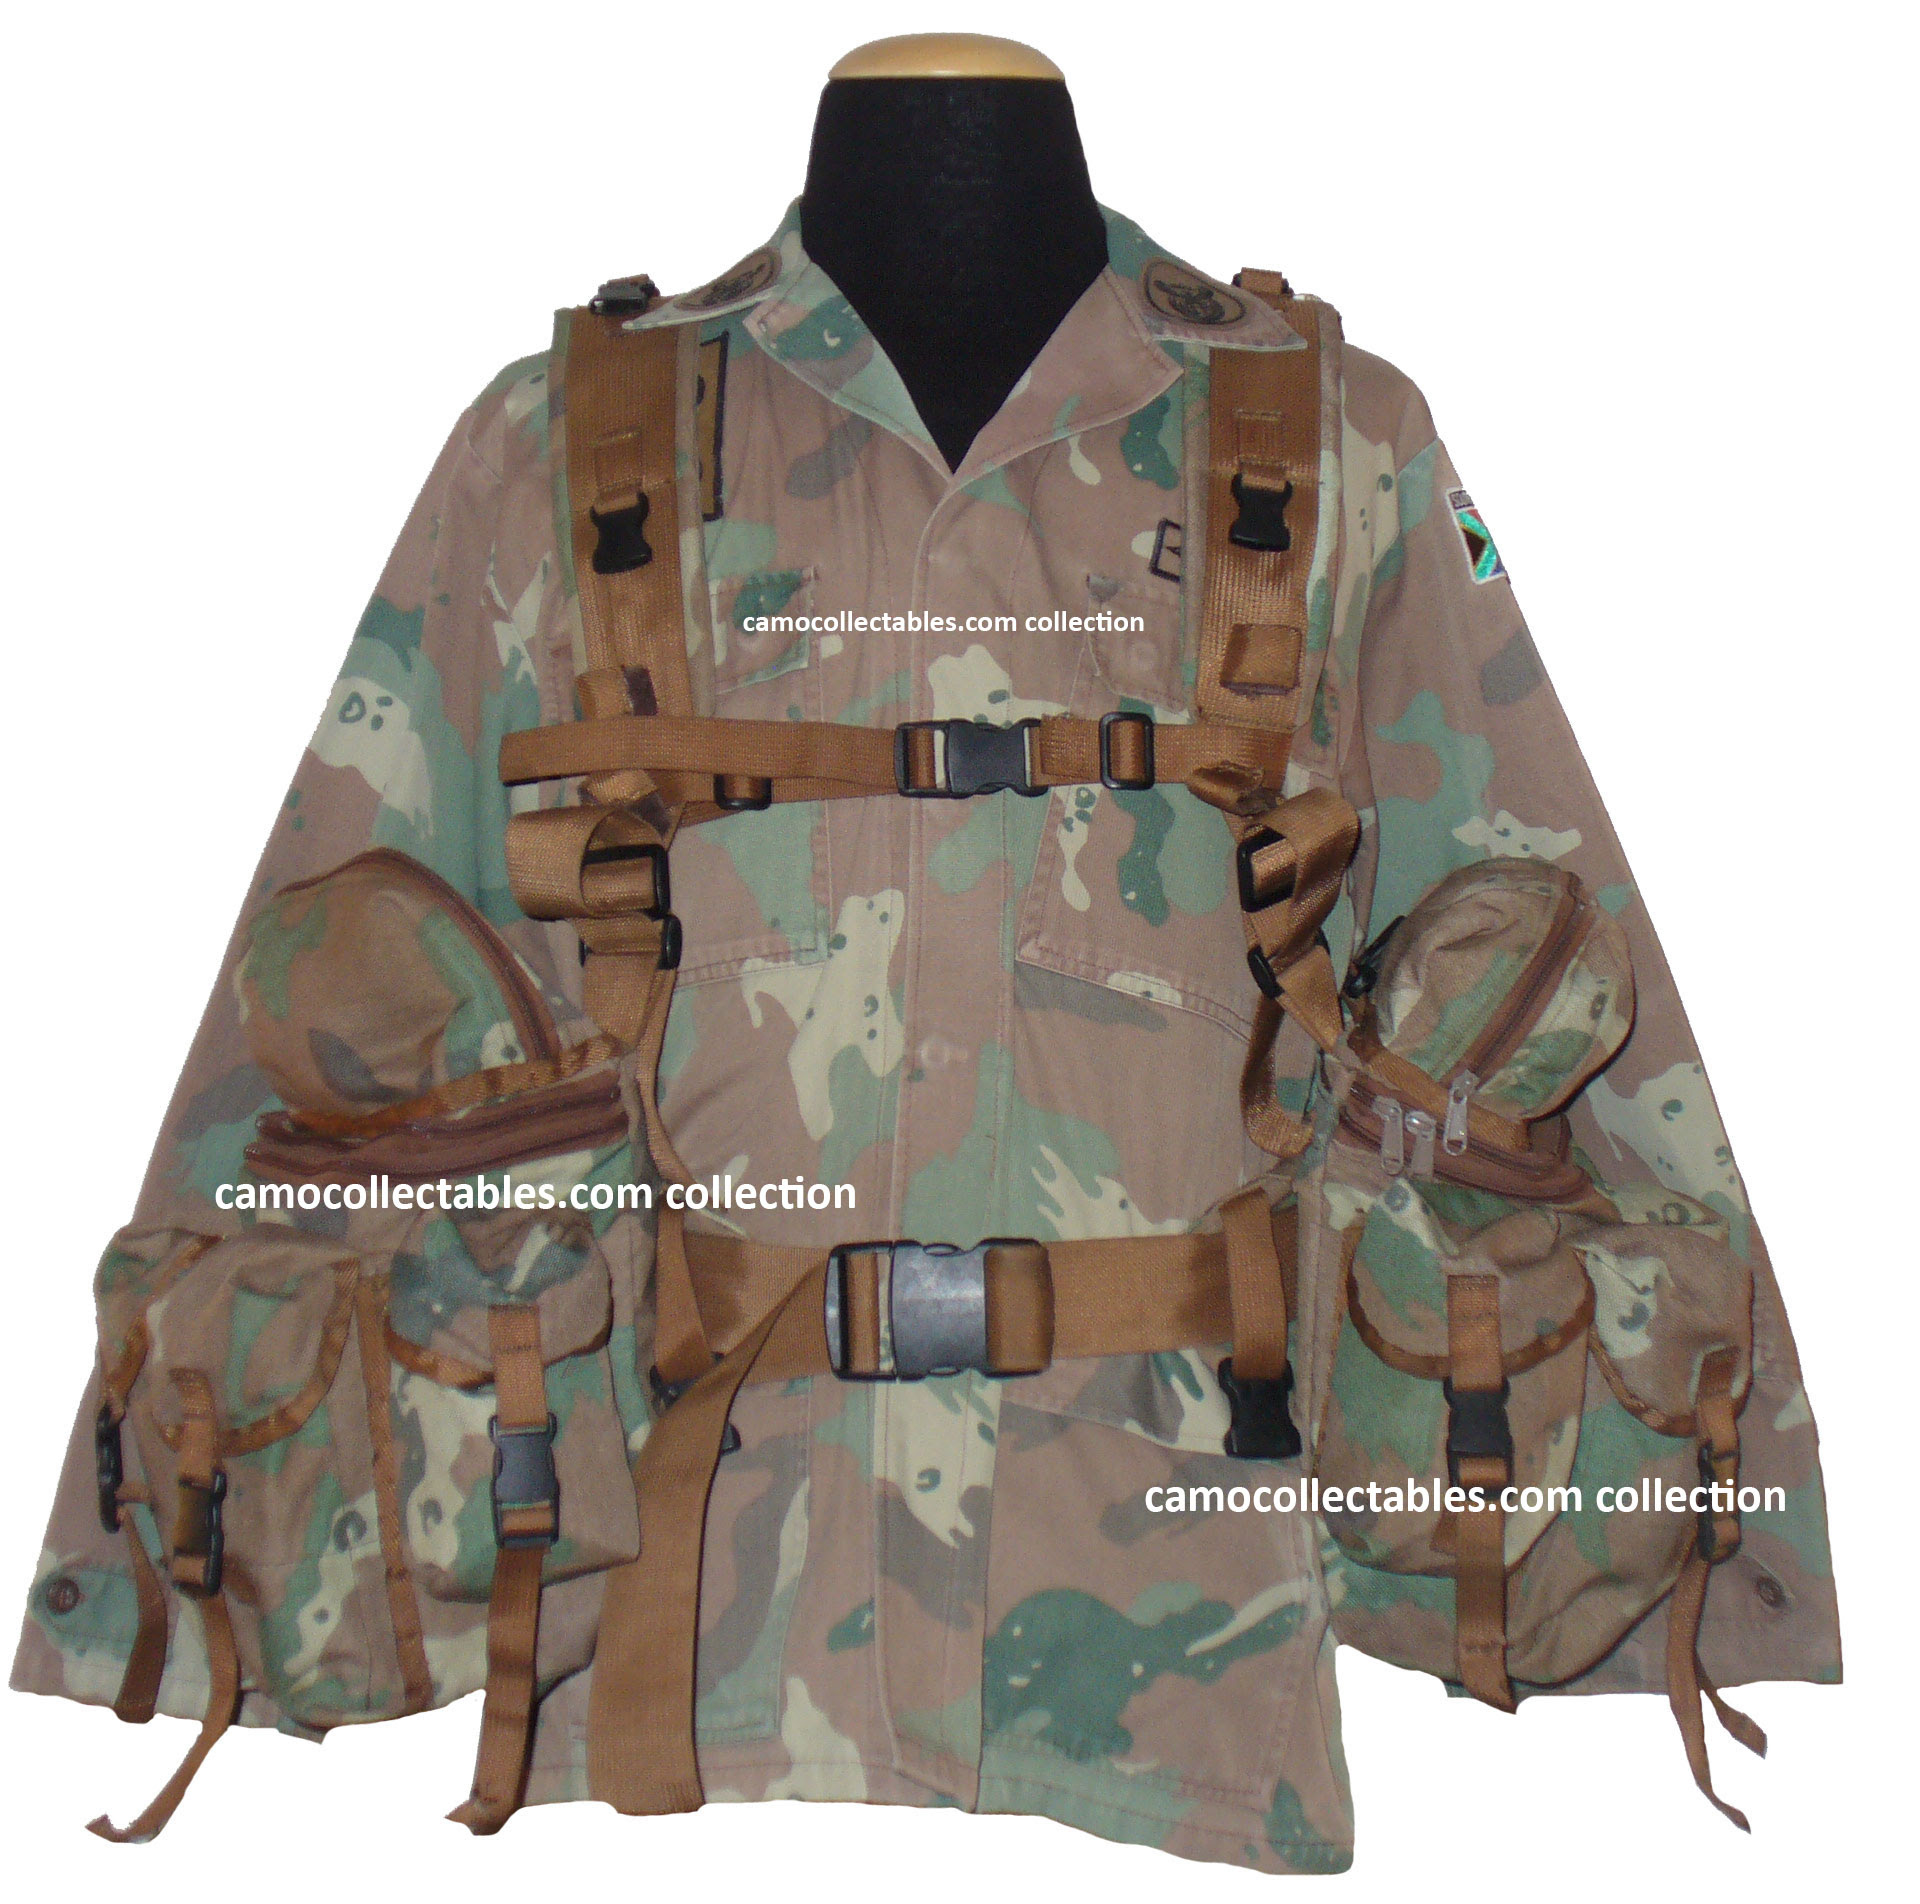 Camo Collectables. SANDF S2000 Battle Jacket Niemoller Style